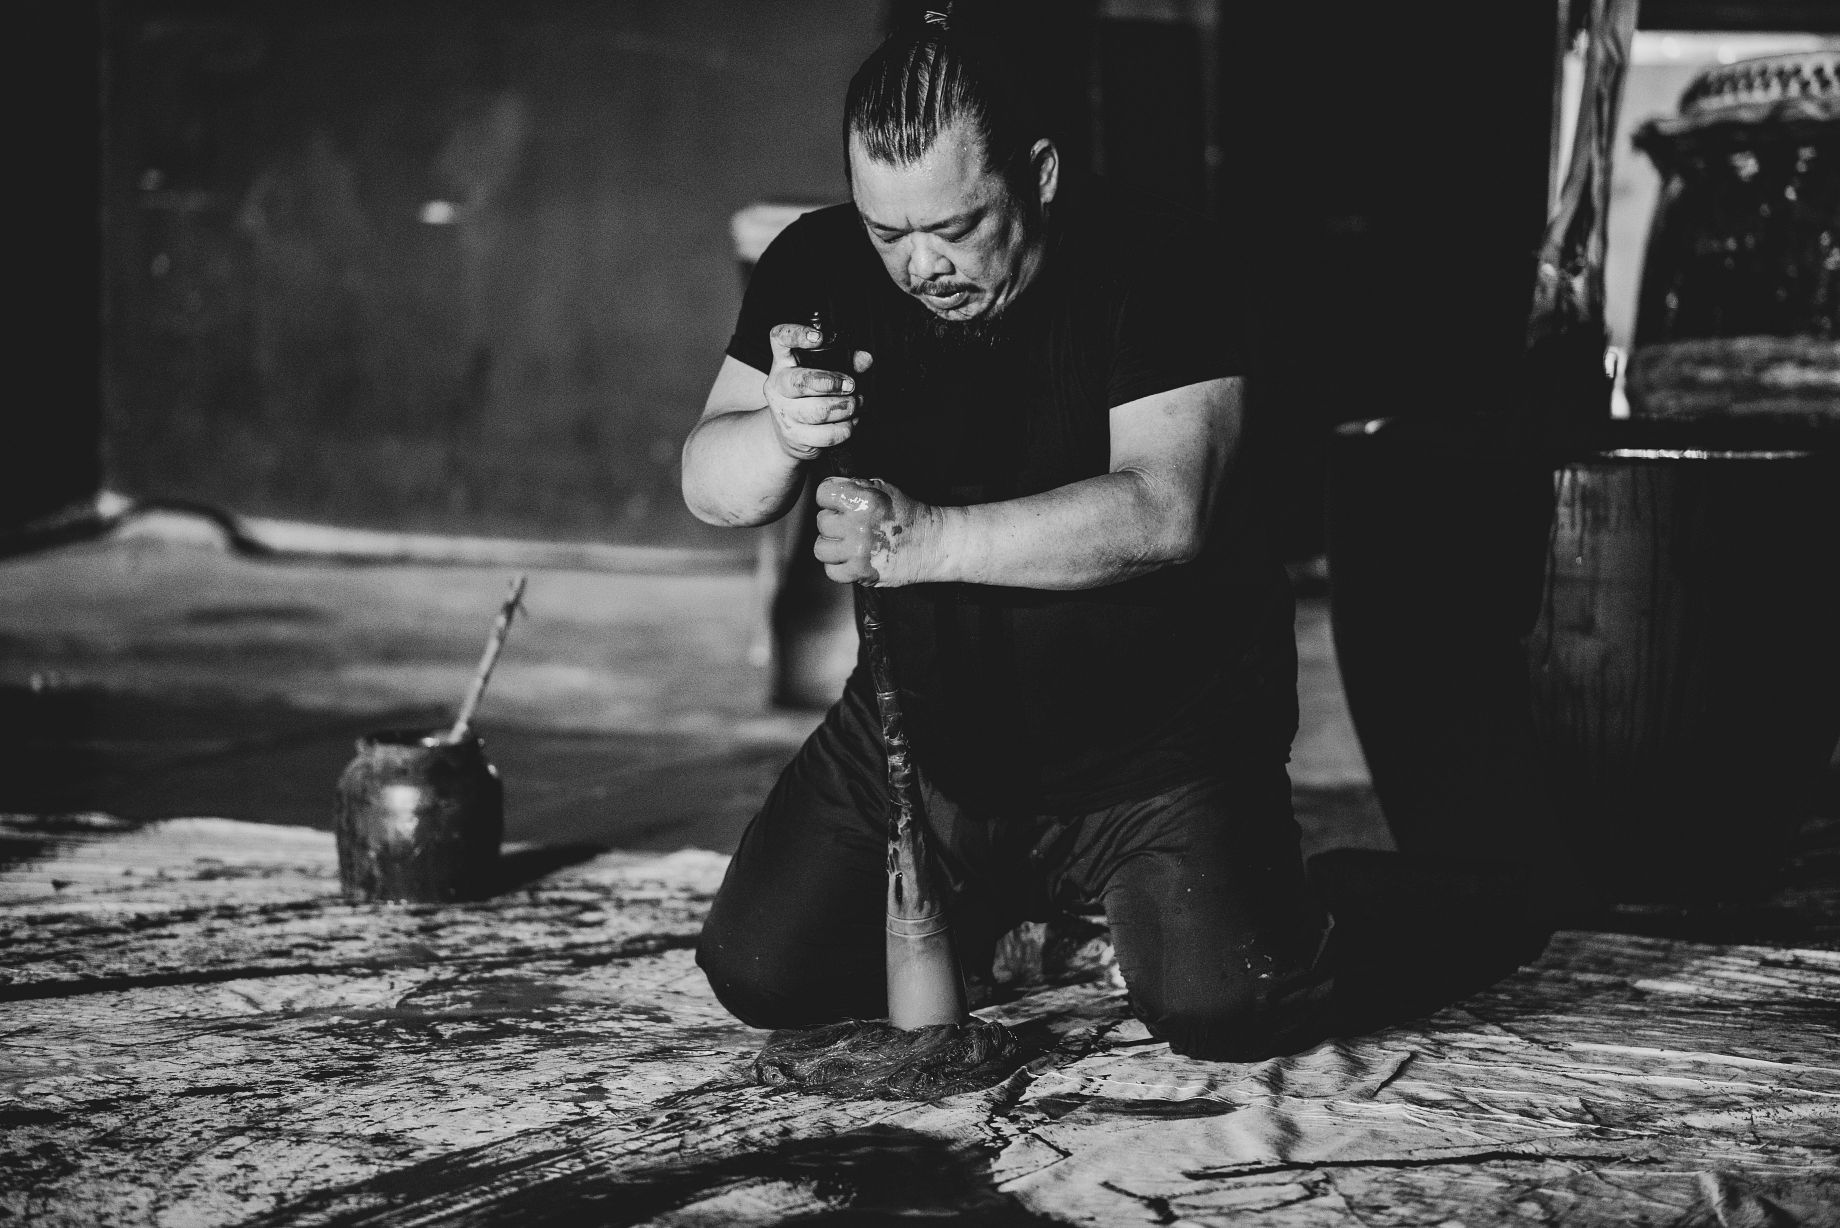 Newly opened PJ Performing Arts Centre welcomes solo calligraphy exhibition by Ong Chia Koon